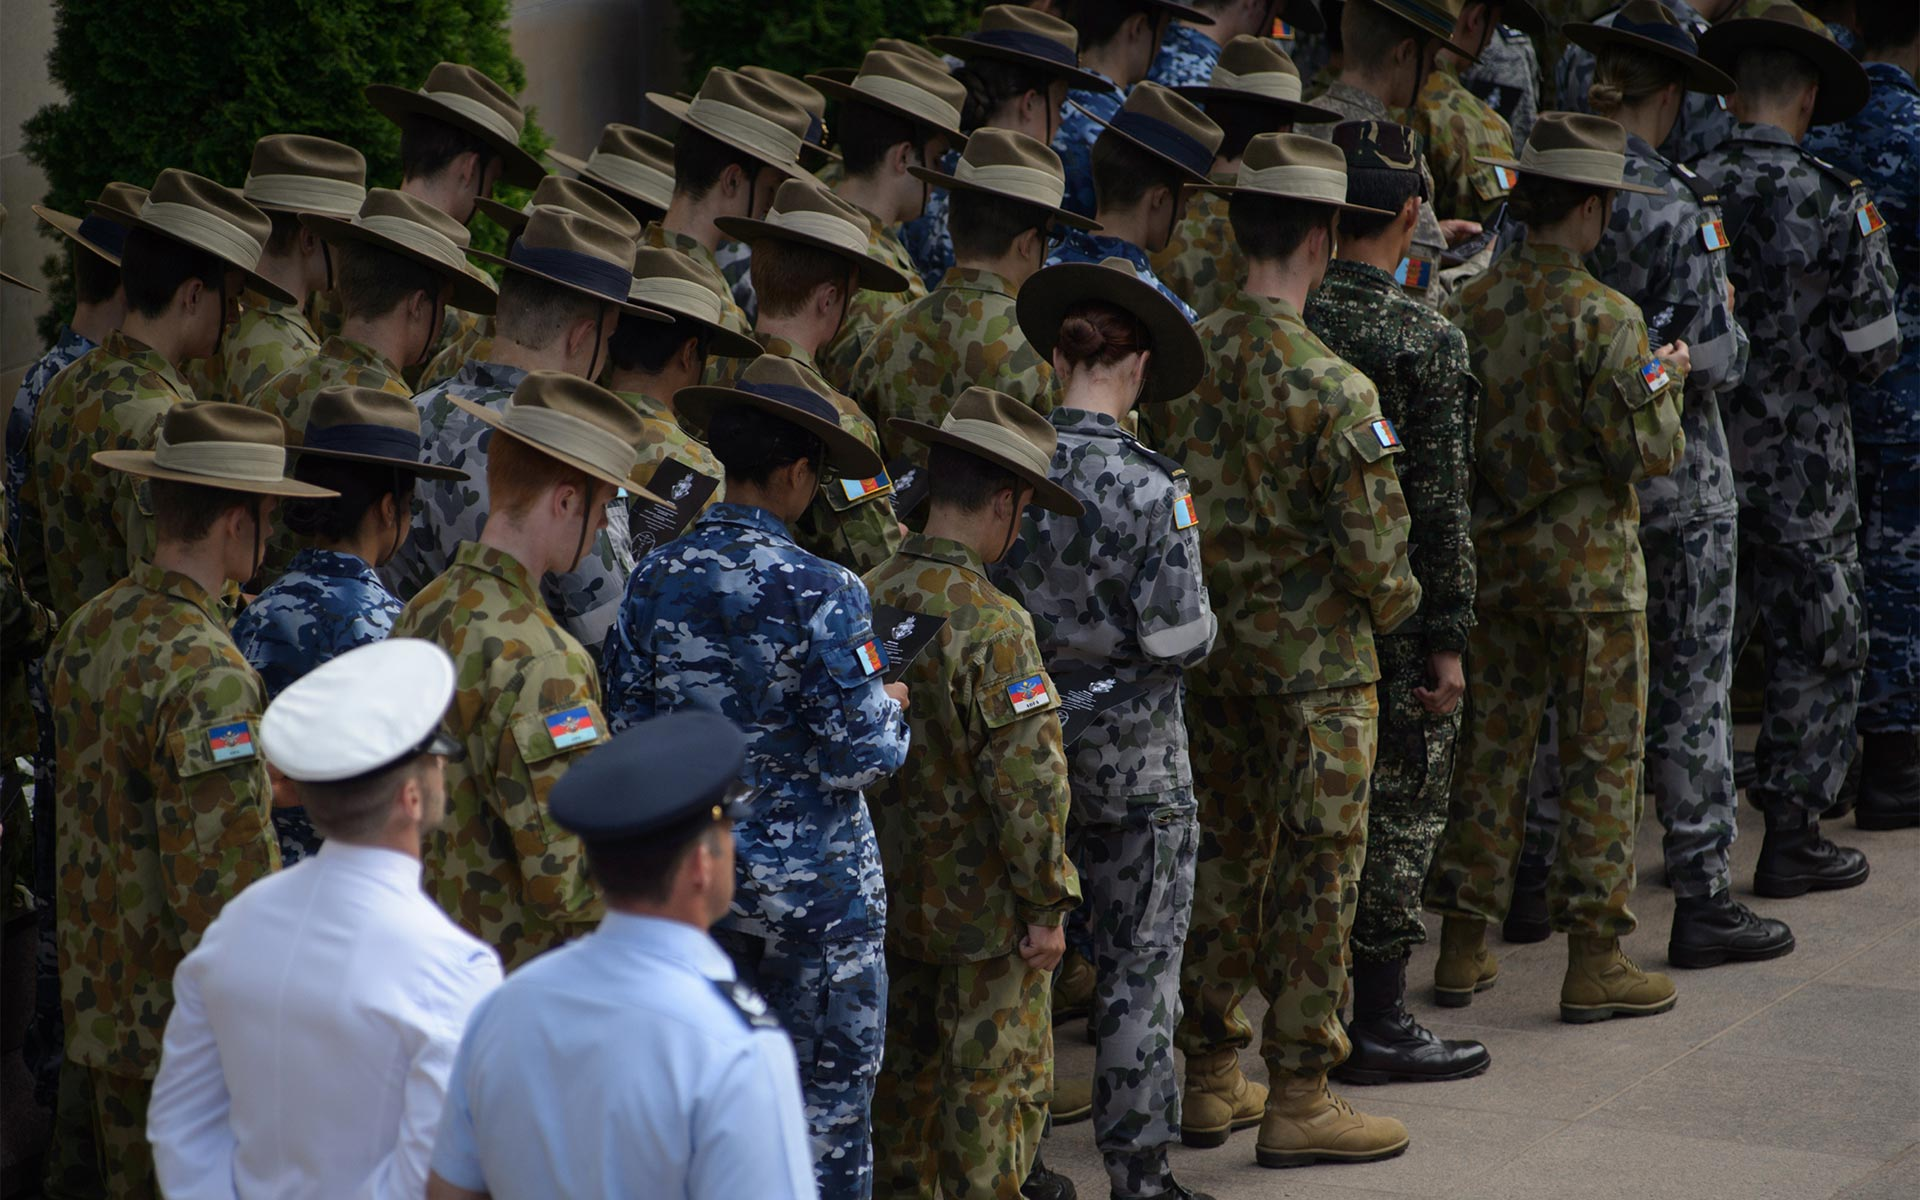 ADF personnel with heads bowed